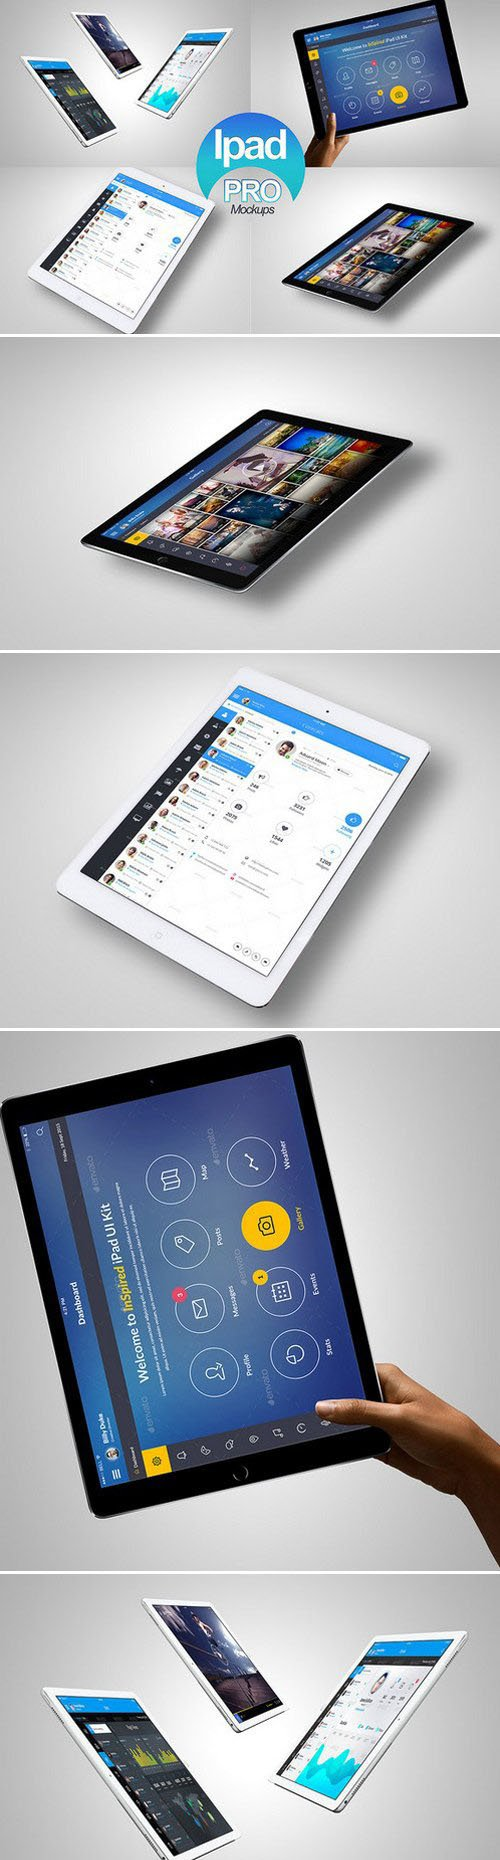 CM - Ipad Pro Tablet Mock-Up